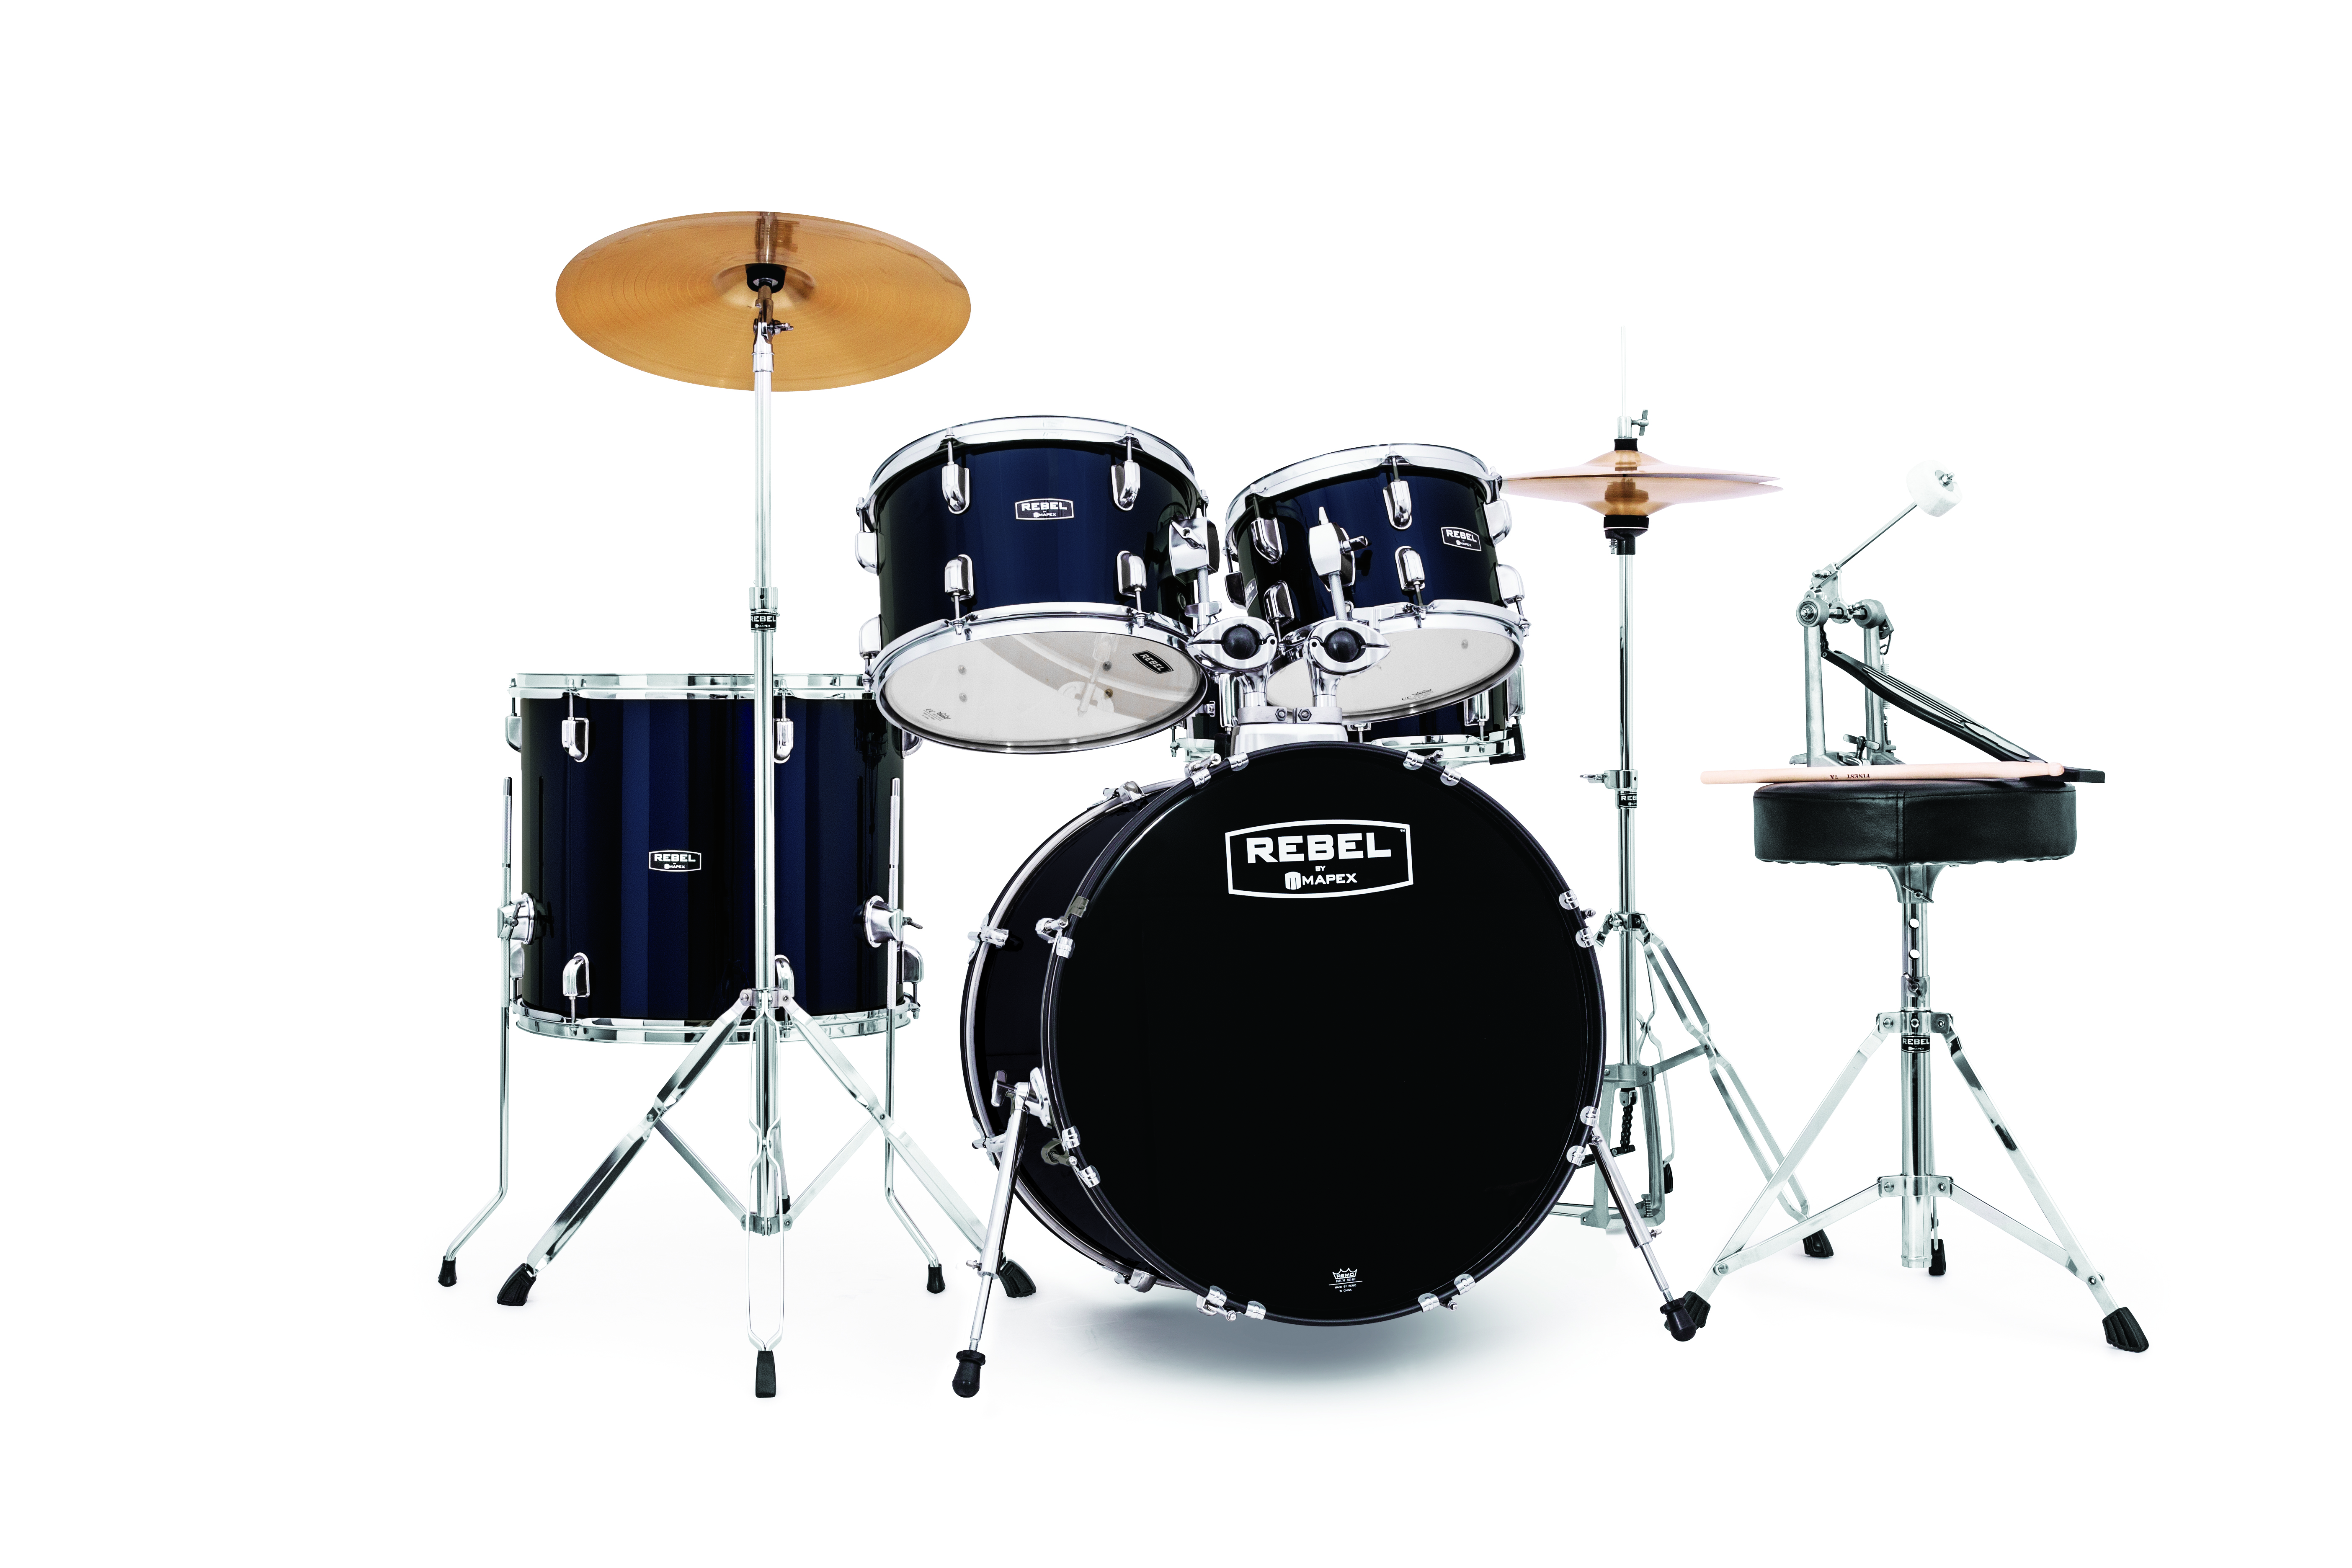 Mapex Rebel 5-piece Complete Jazz Set Up with Fast Size Toms - RB5044FTCYB - Royal Blue